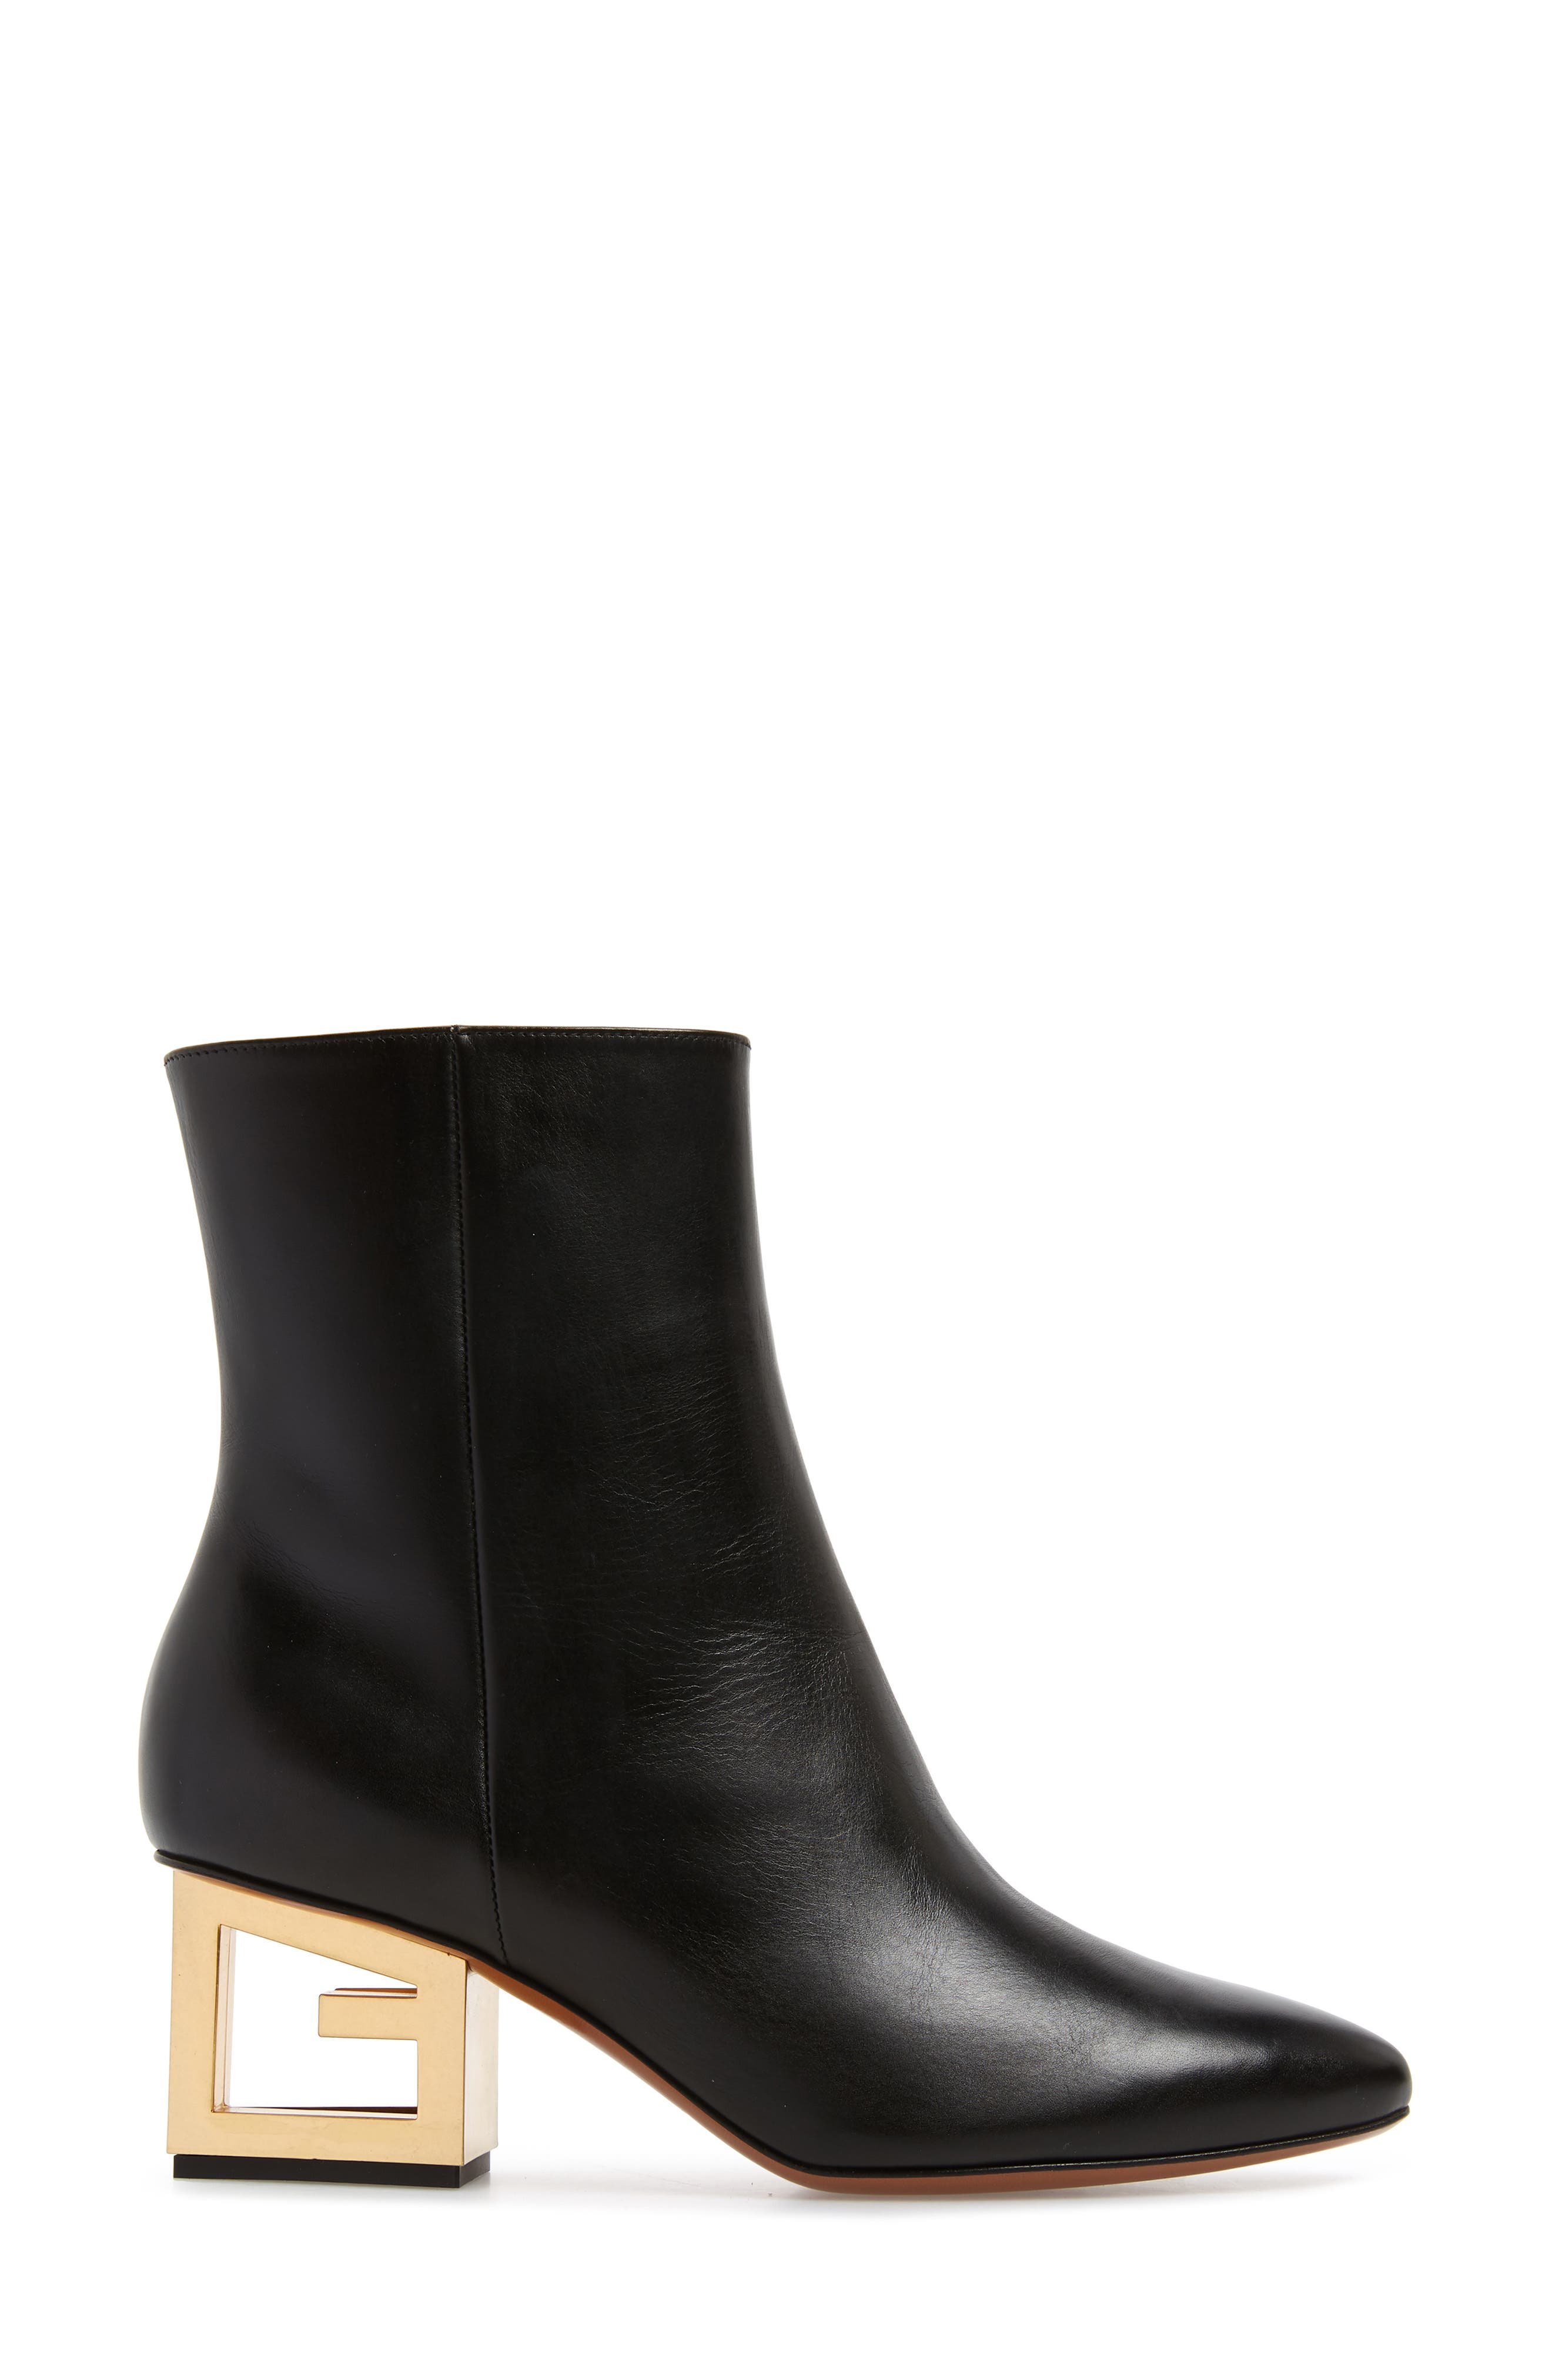 GIVENCHY,                             Triangle Heel Ankle Boot,                             Alternate thumbnail 3, color,                             BLACK